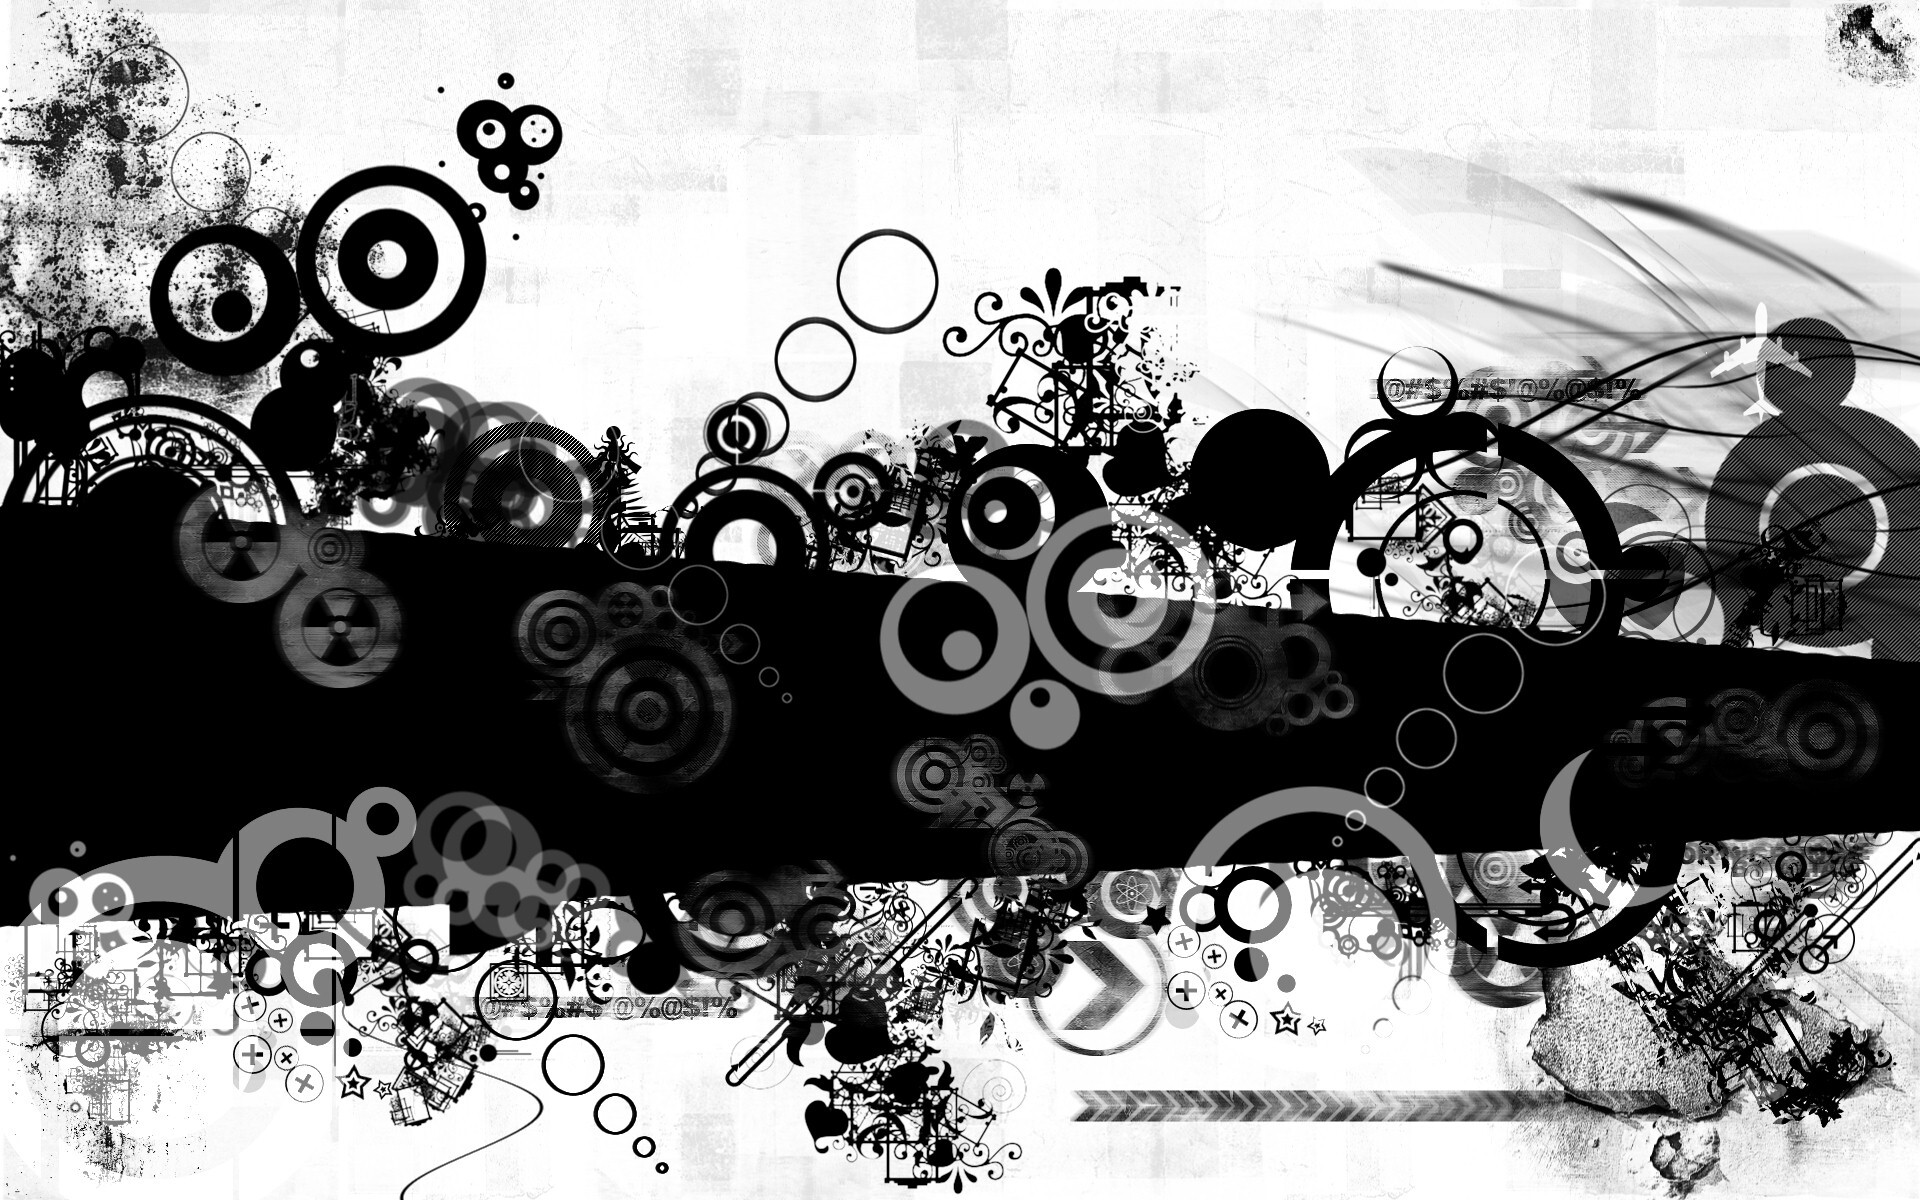 Black Designing Background Image Hd Wallpapers